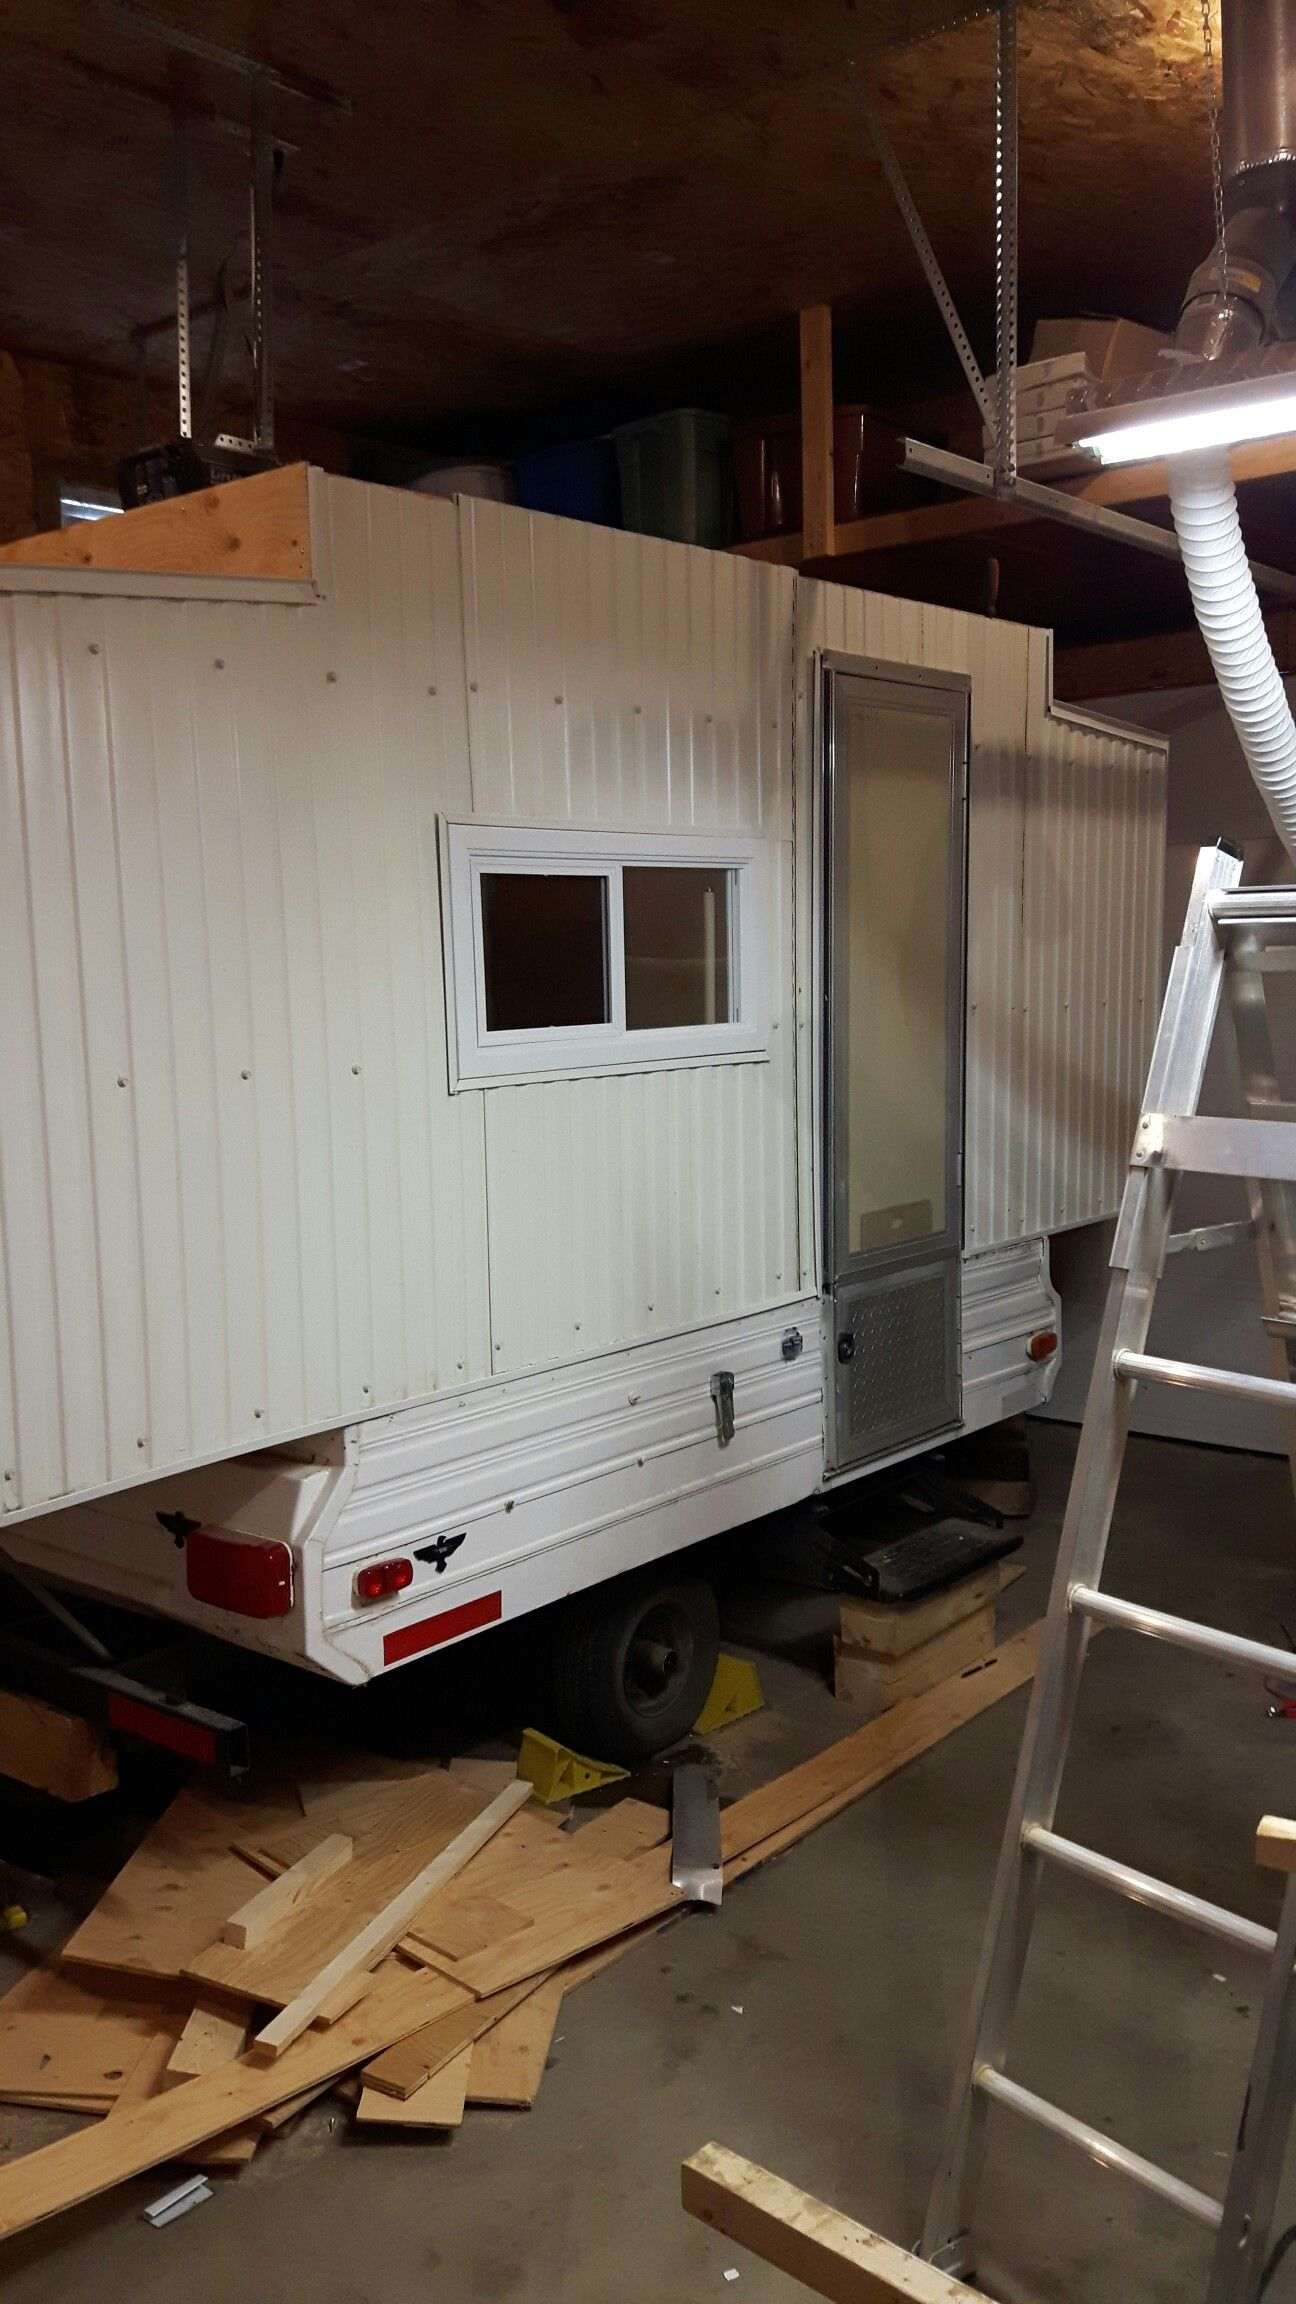 Pop-up tent trailer turned ice fishing shack | Trailers